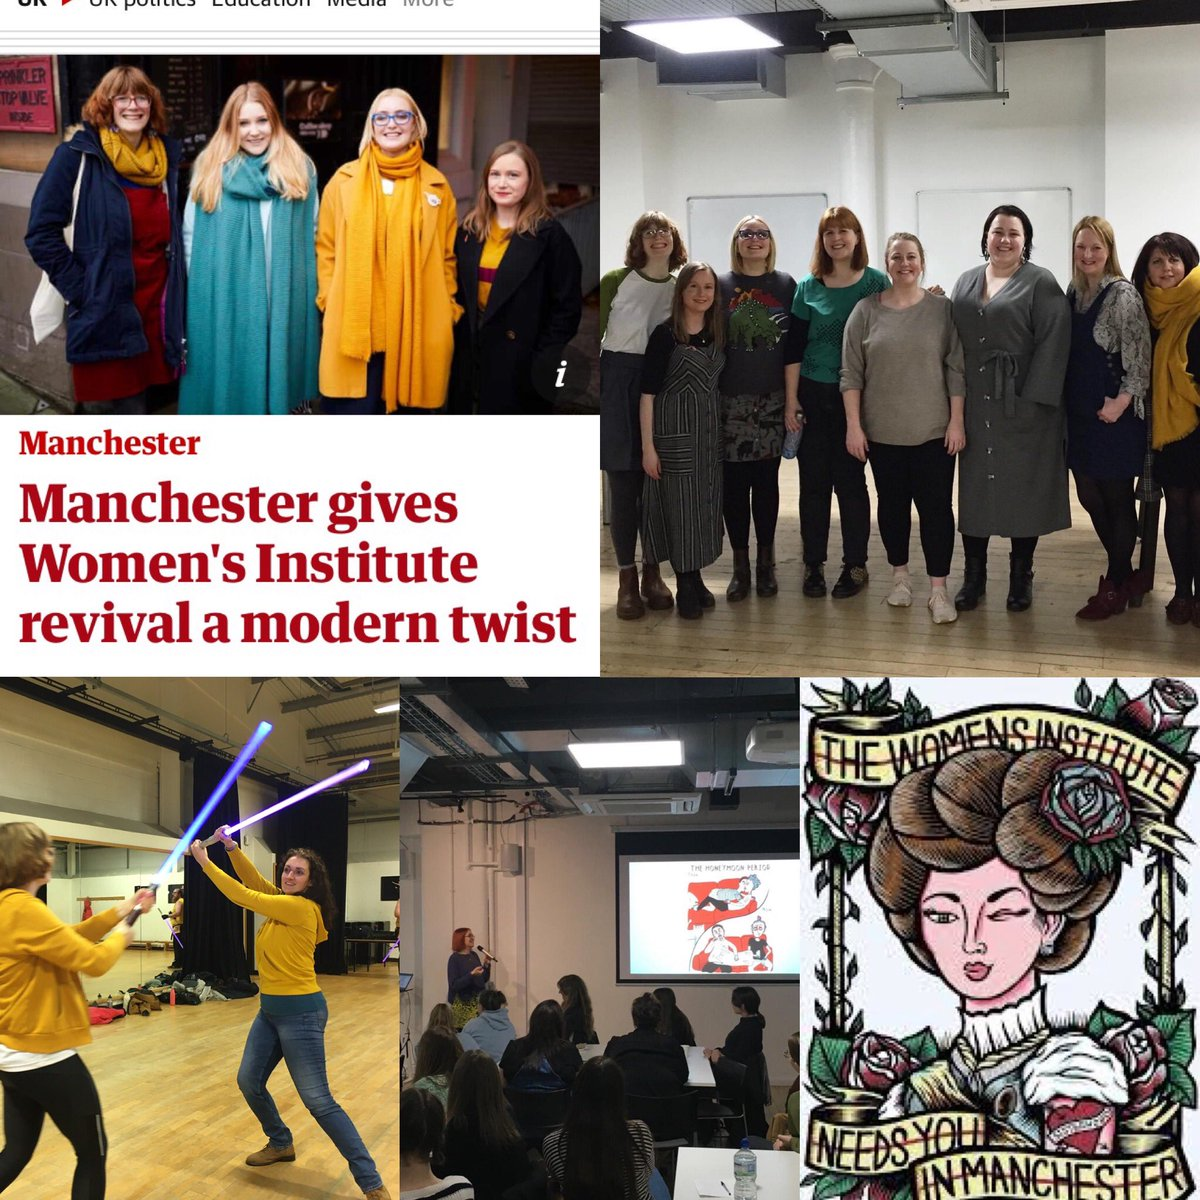 It's #WIday ! The @womensinstitute turns 105 today! So proud to be a part of an institution that's supporting women while smashing stereotypes 🐝🐝🐝 @ManchesterWI #widay #wilife #womensinstitute